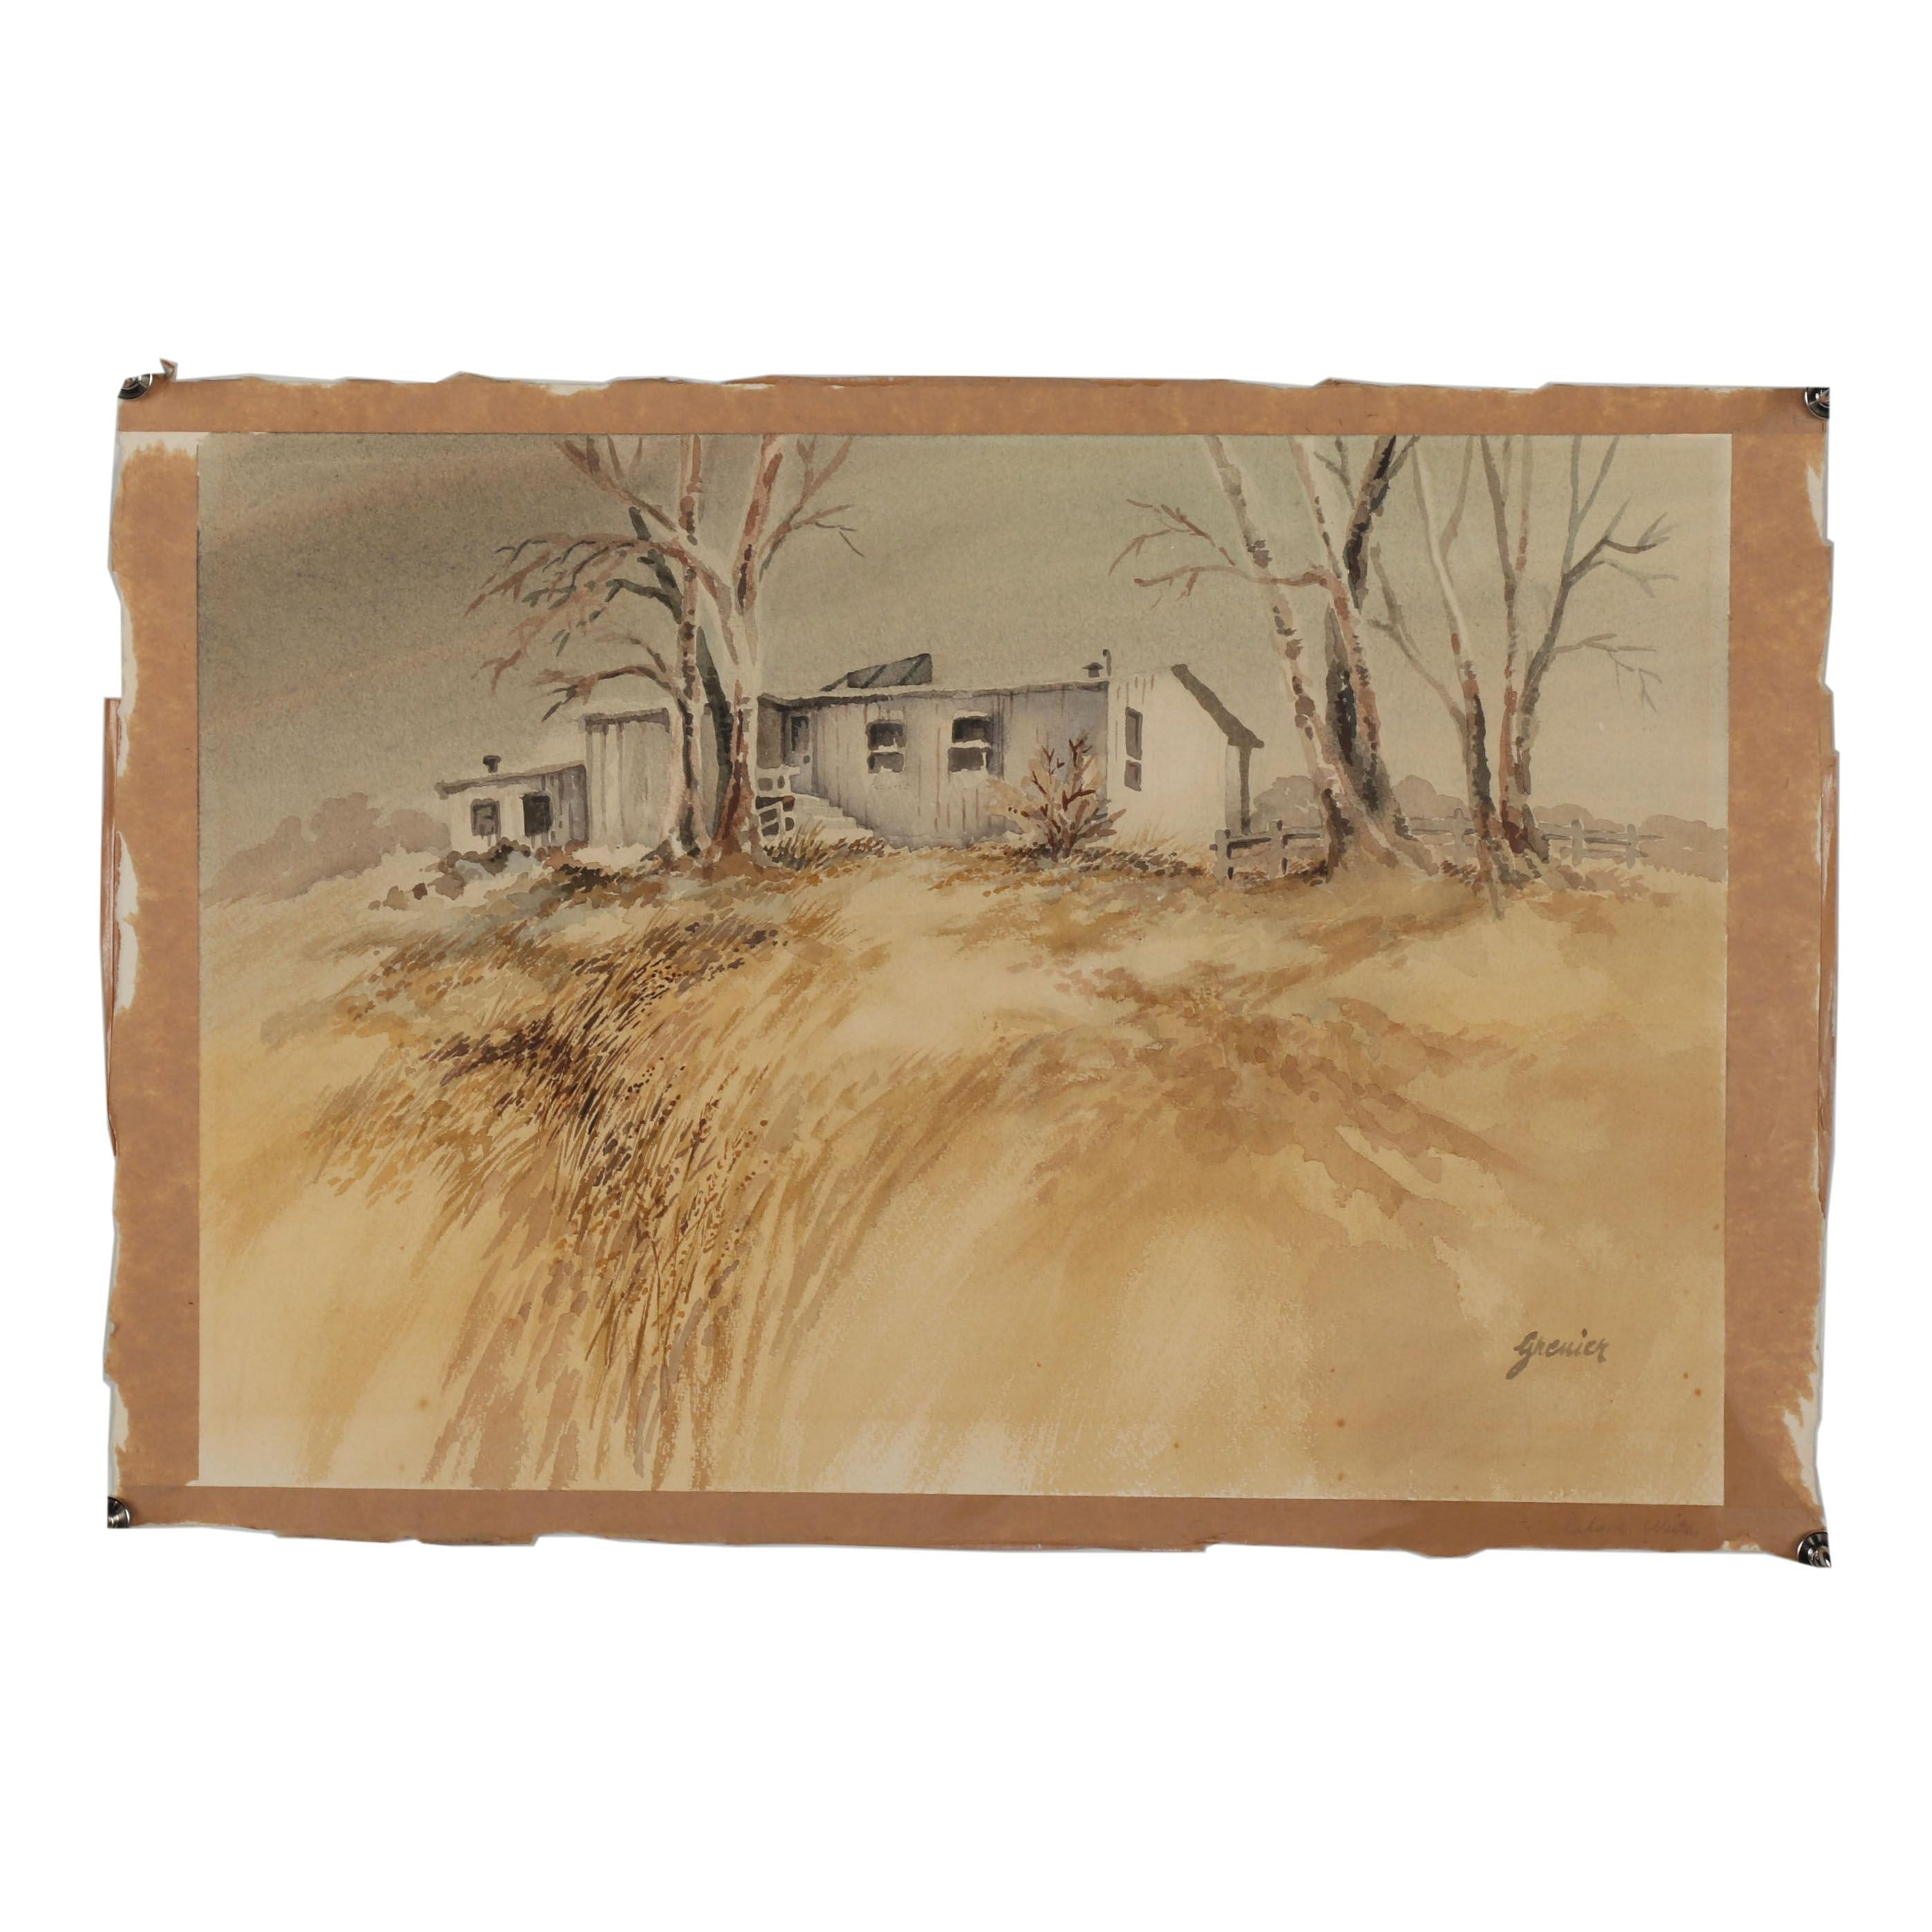 Early 20th Century Landscape Watercolor Painting